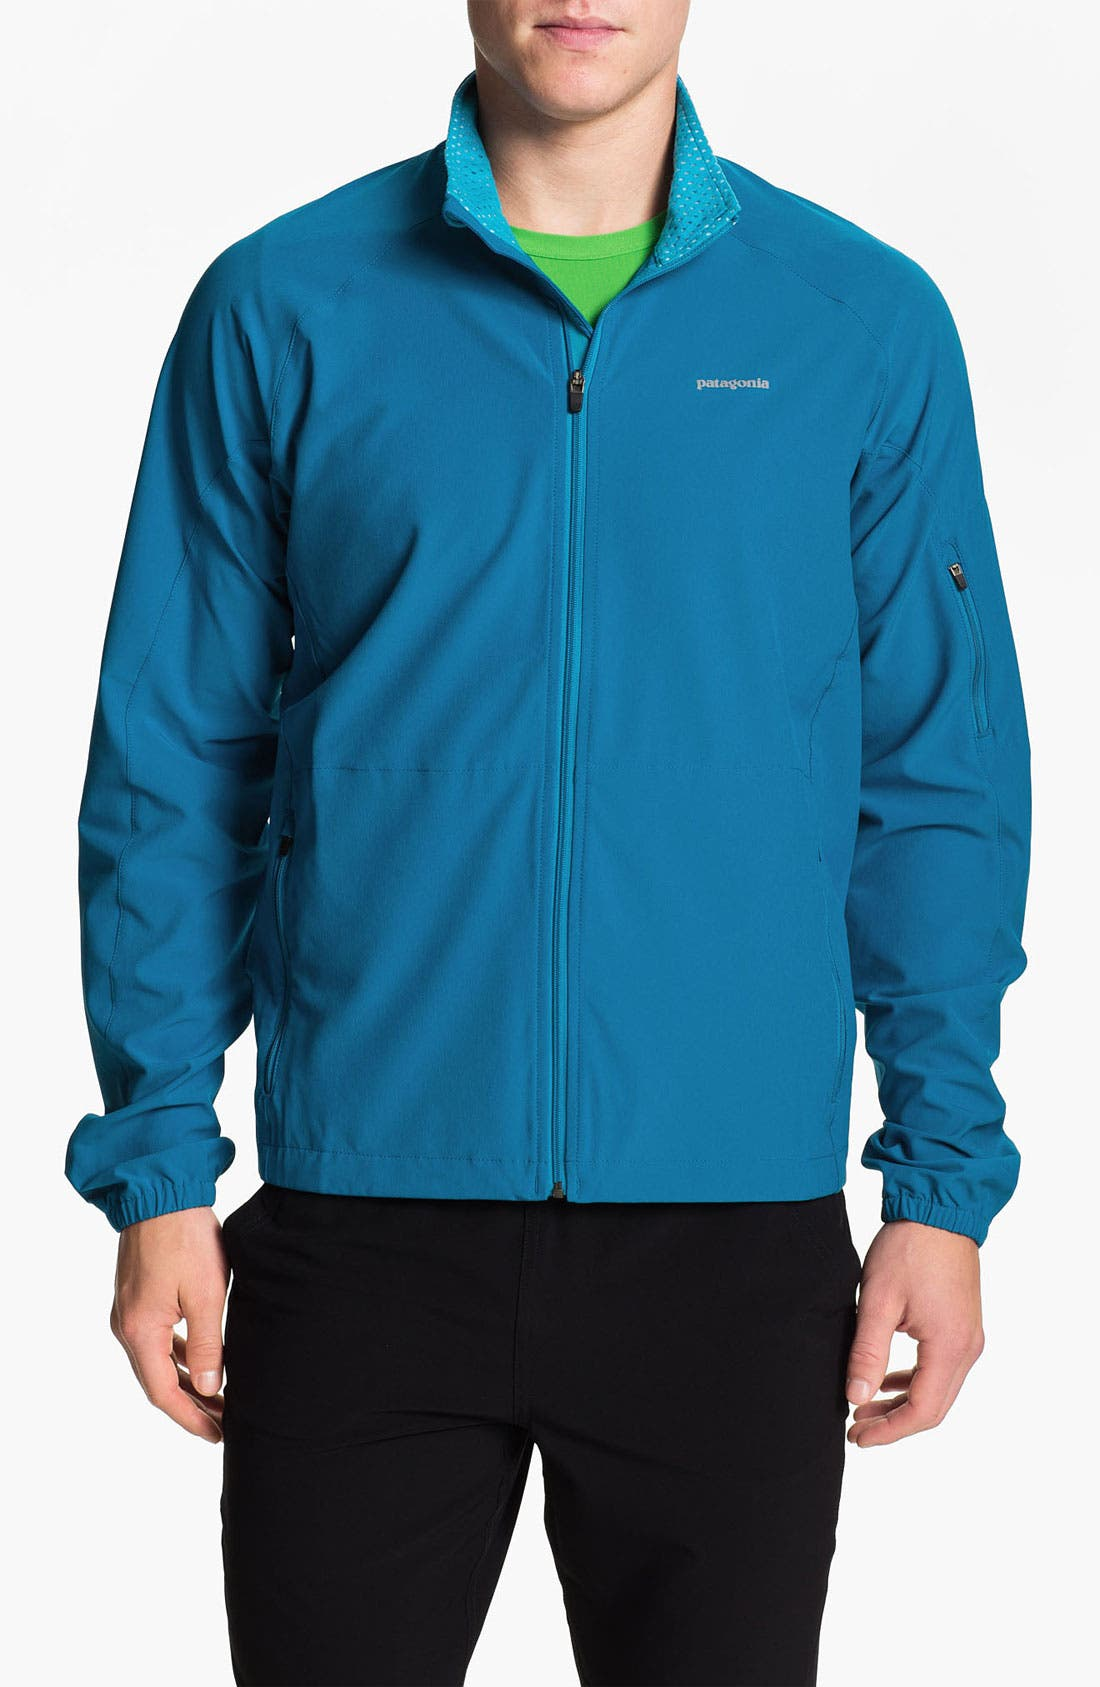 Alternate Image 1 Selected - Patagonia 'Traverse' Jacket (Online Only)